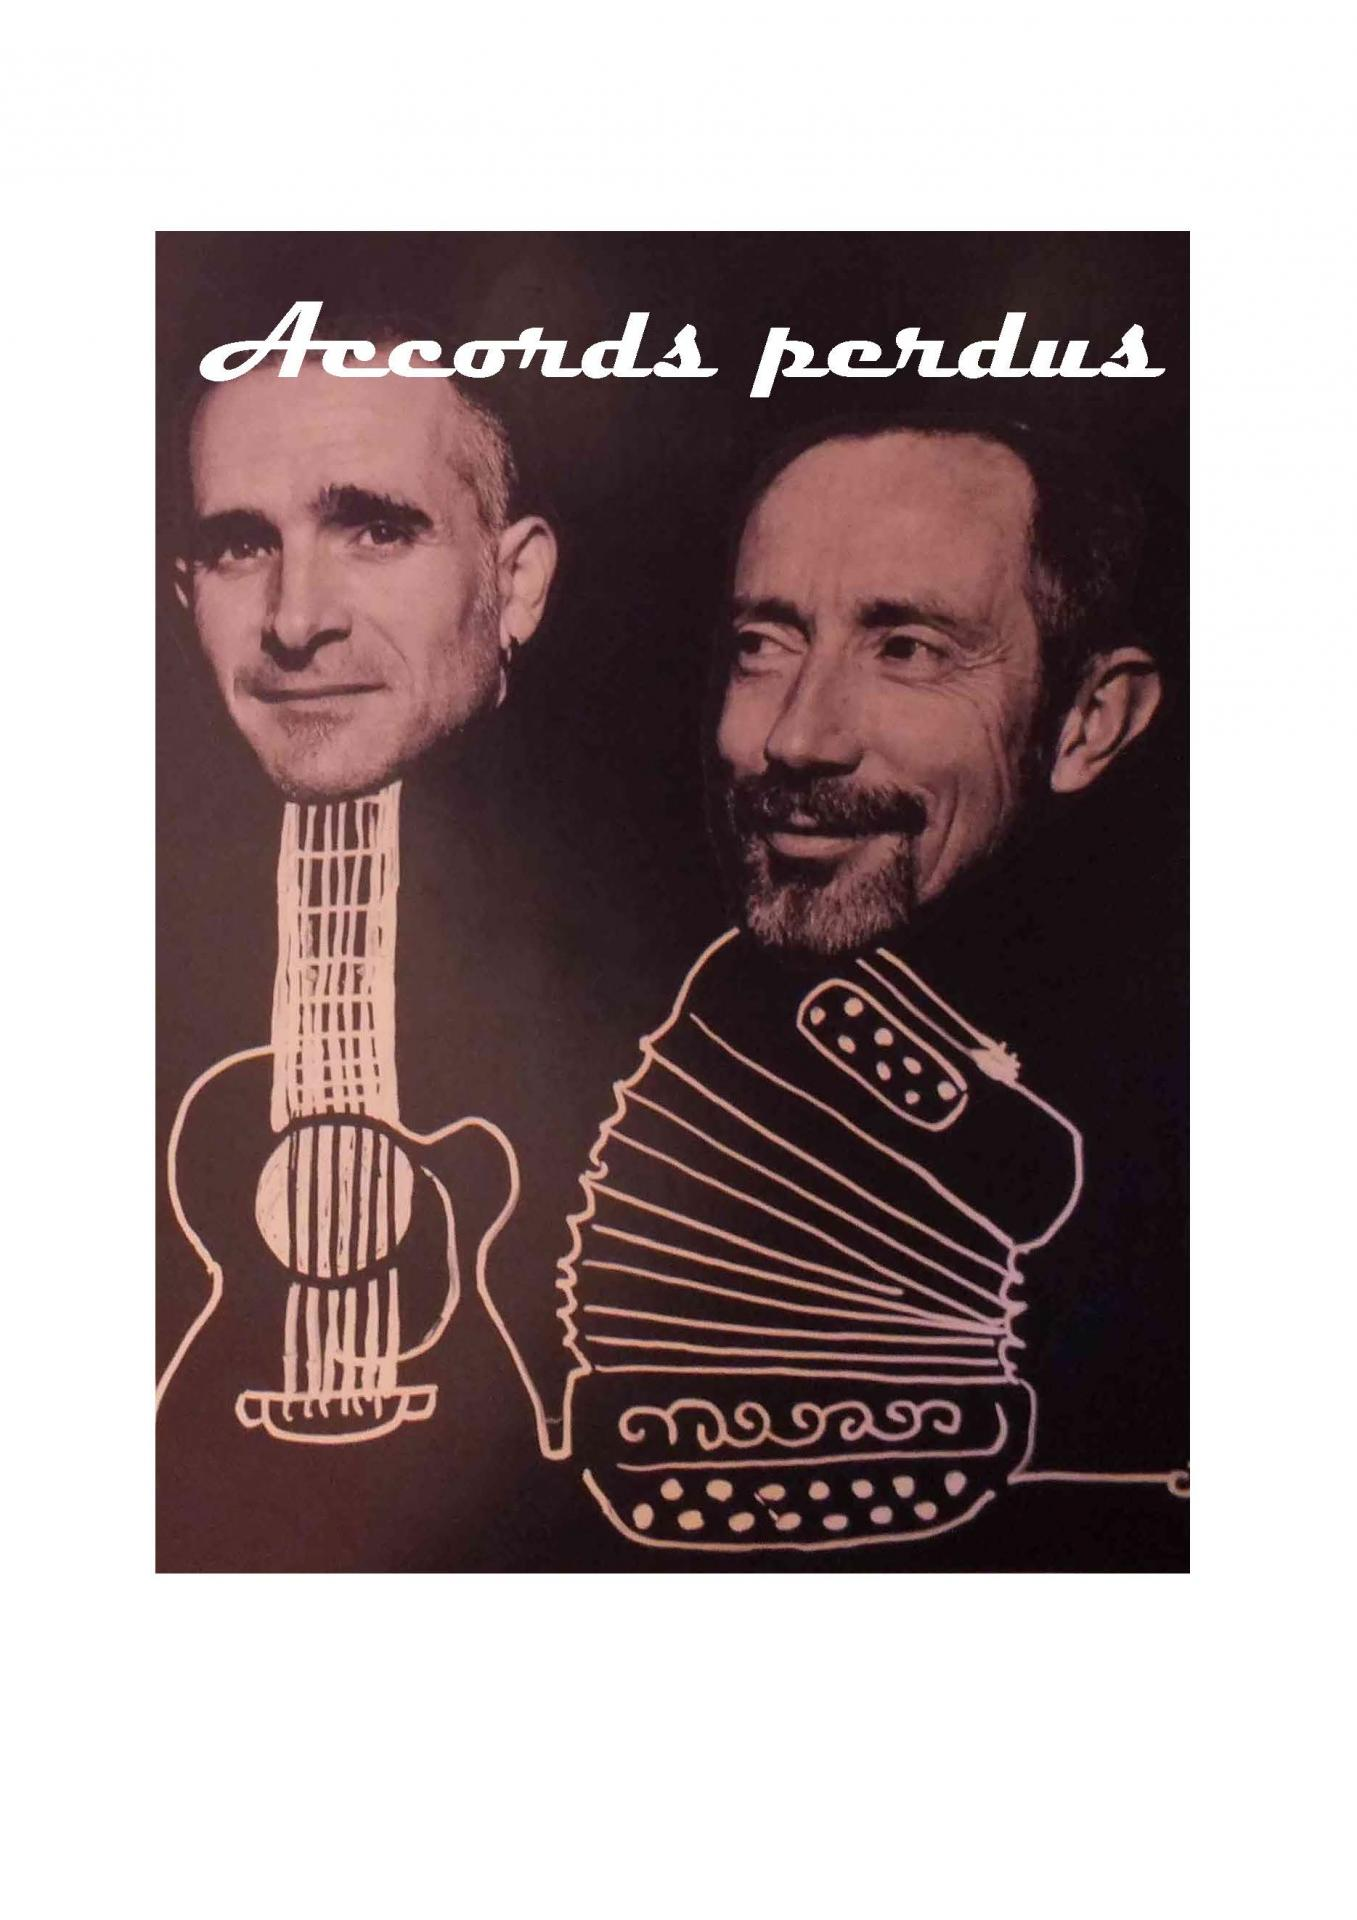 Accords perdus affiche 1